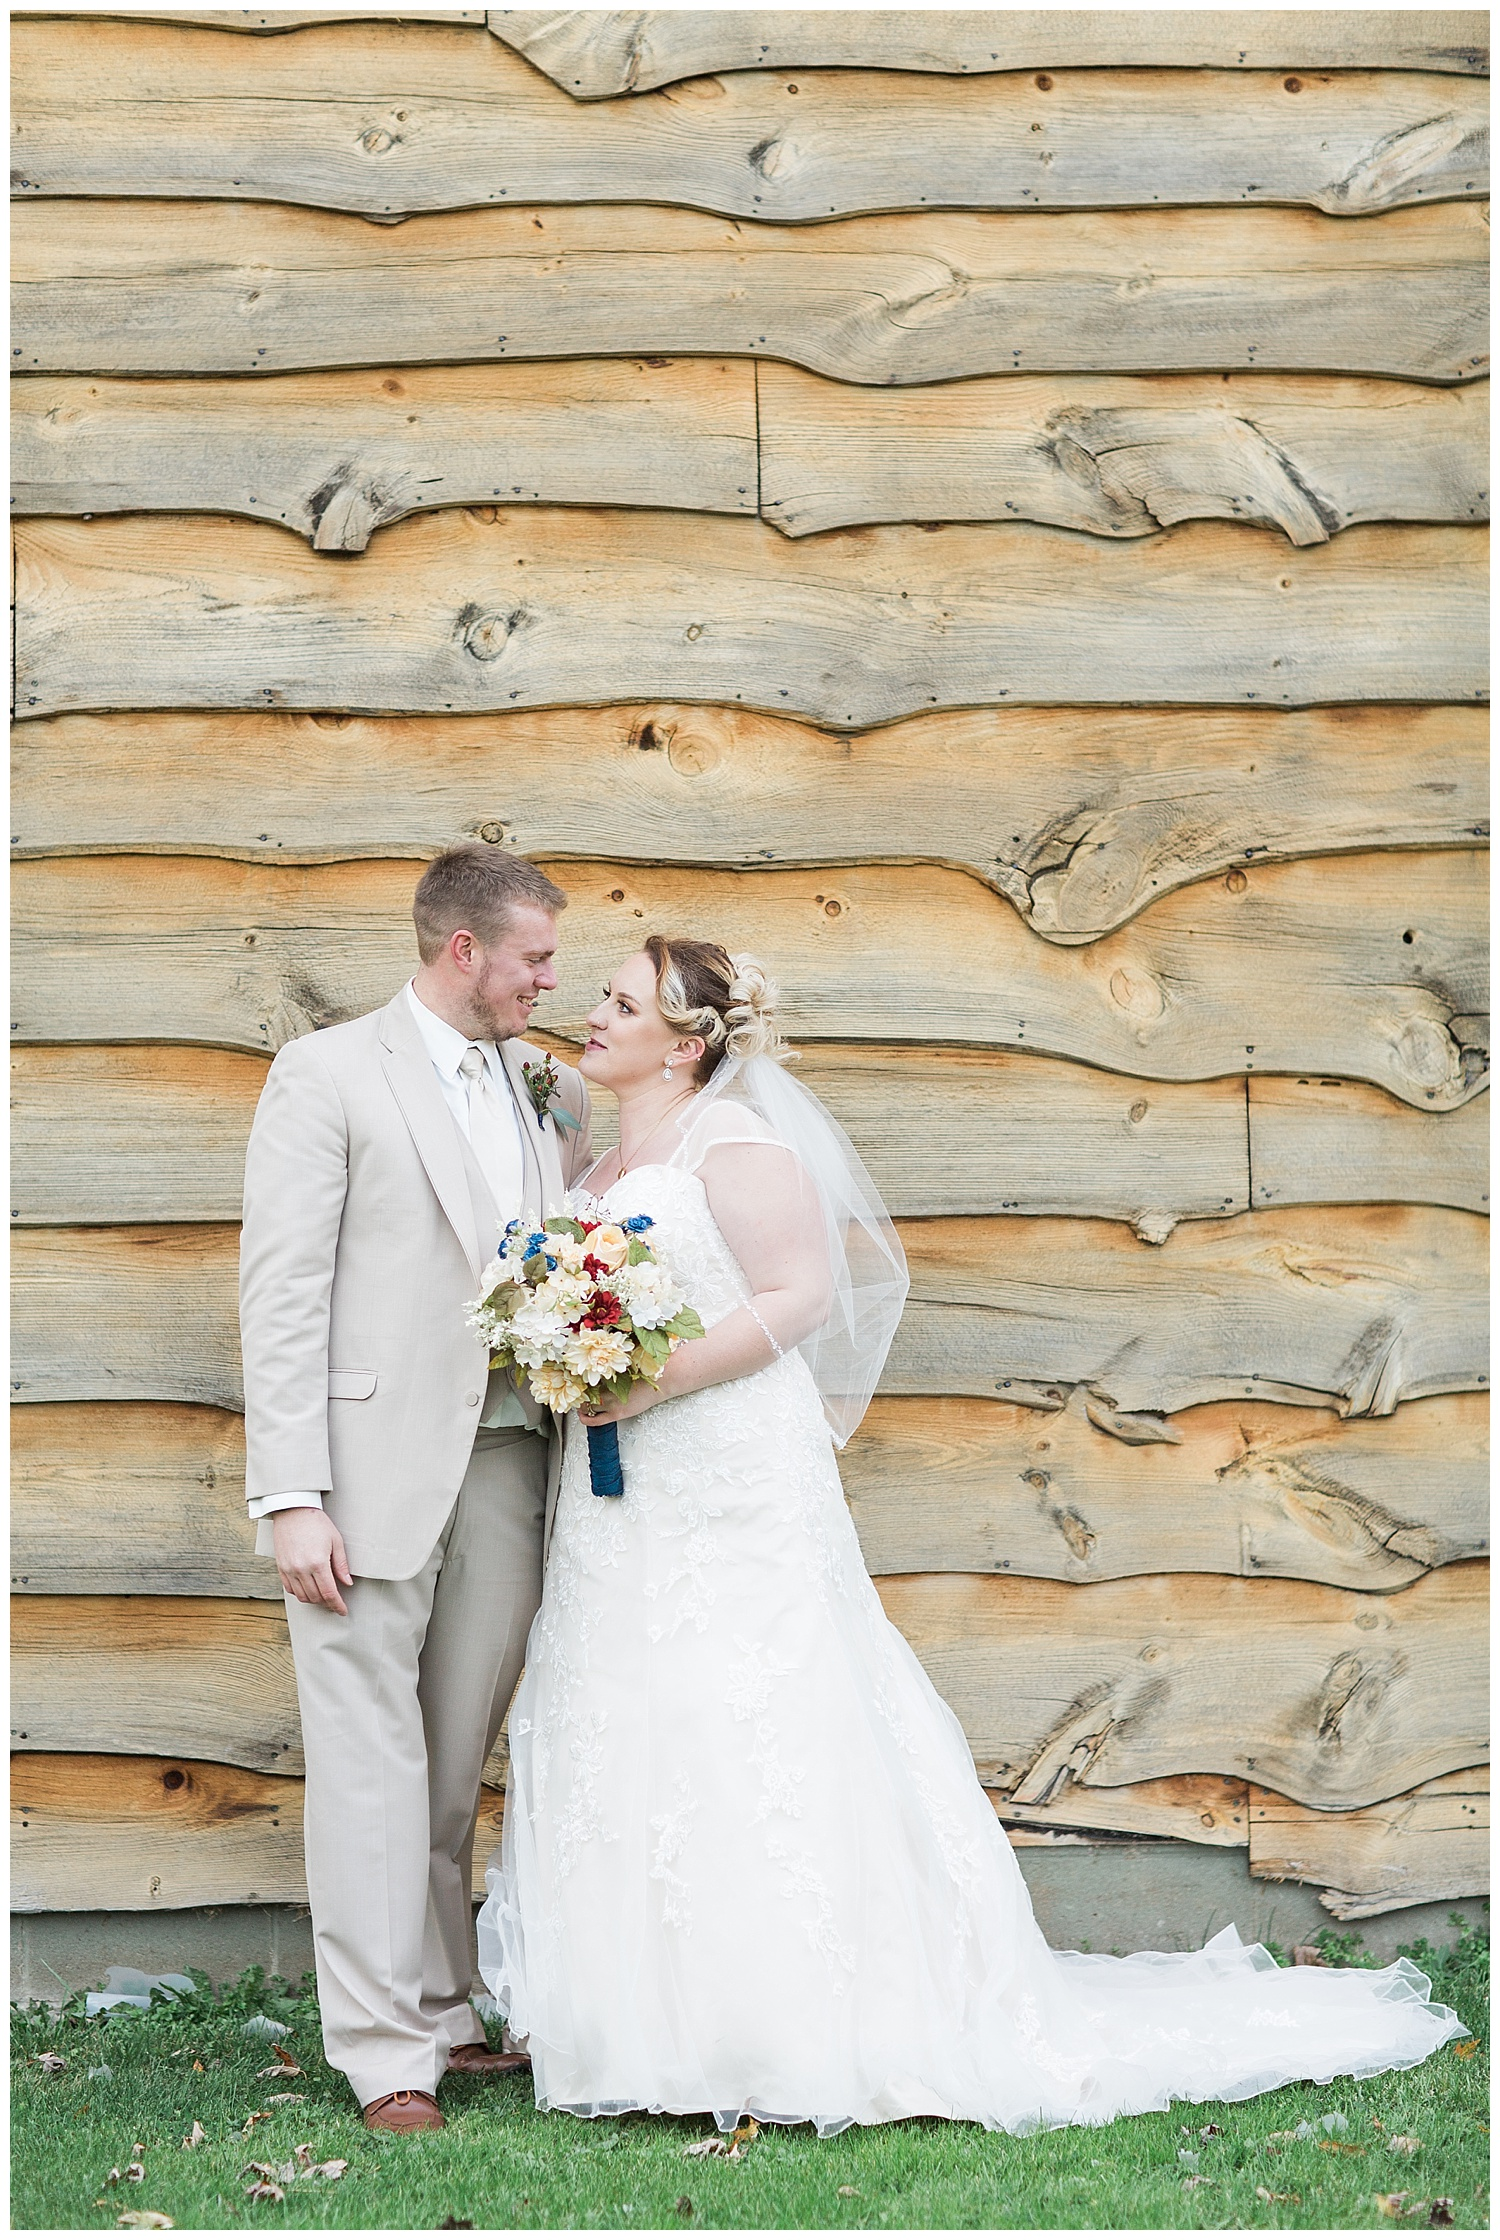 Longwell Wedding - Lass and Beau - Hickory Ridge -1003_Buffalo wedding photography.jpg